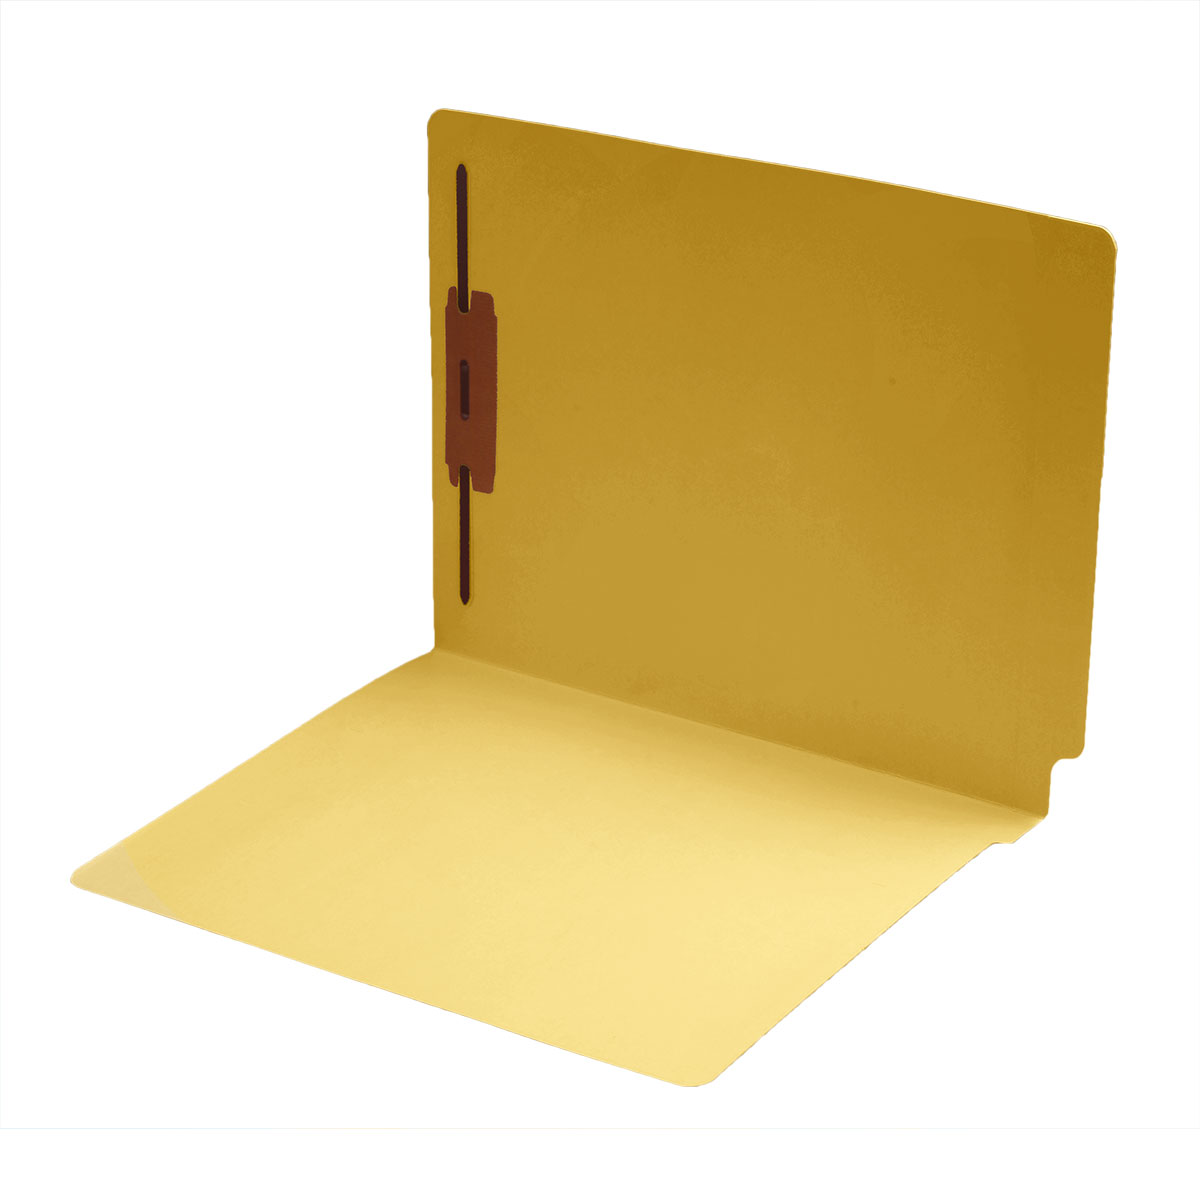 S-1601-YLW - 14 pt Color Folders, Full Cut 2-Ply End Tab, Letter Size, Fastener Pos #1, Yellow (Box of 50)